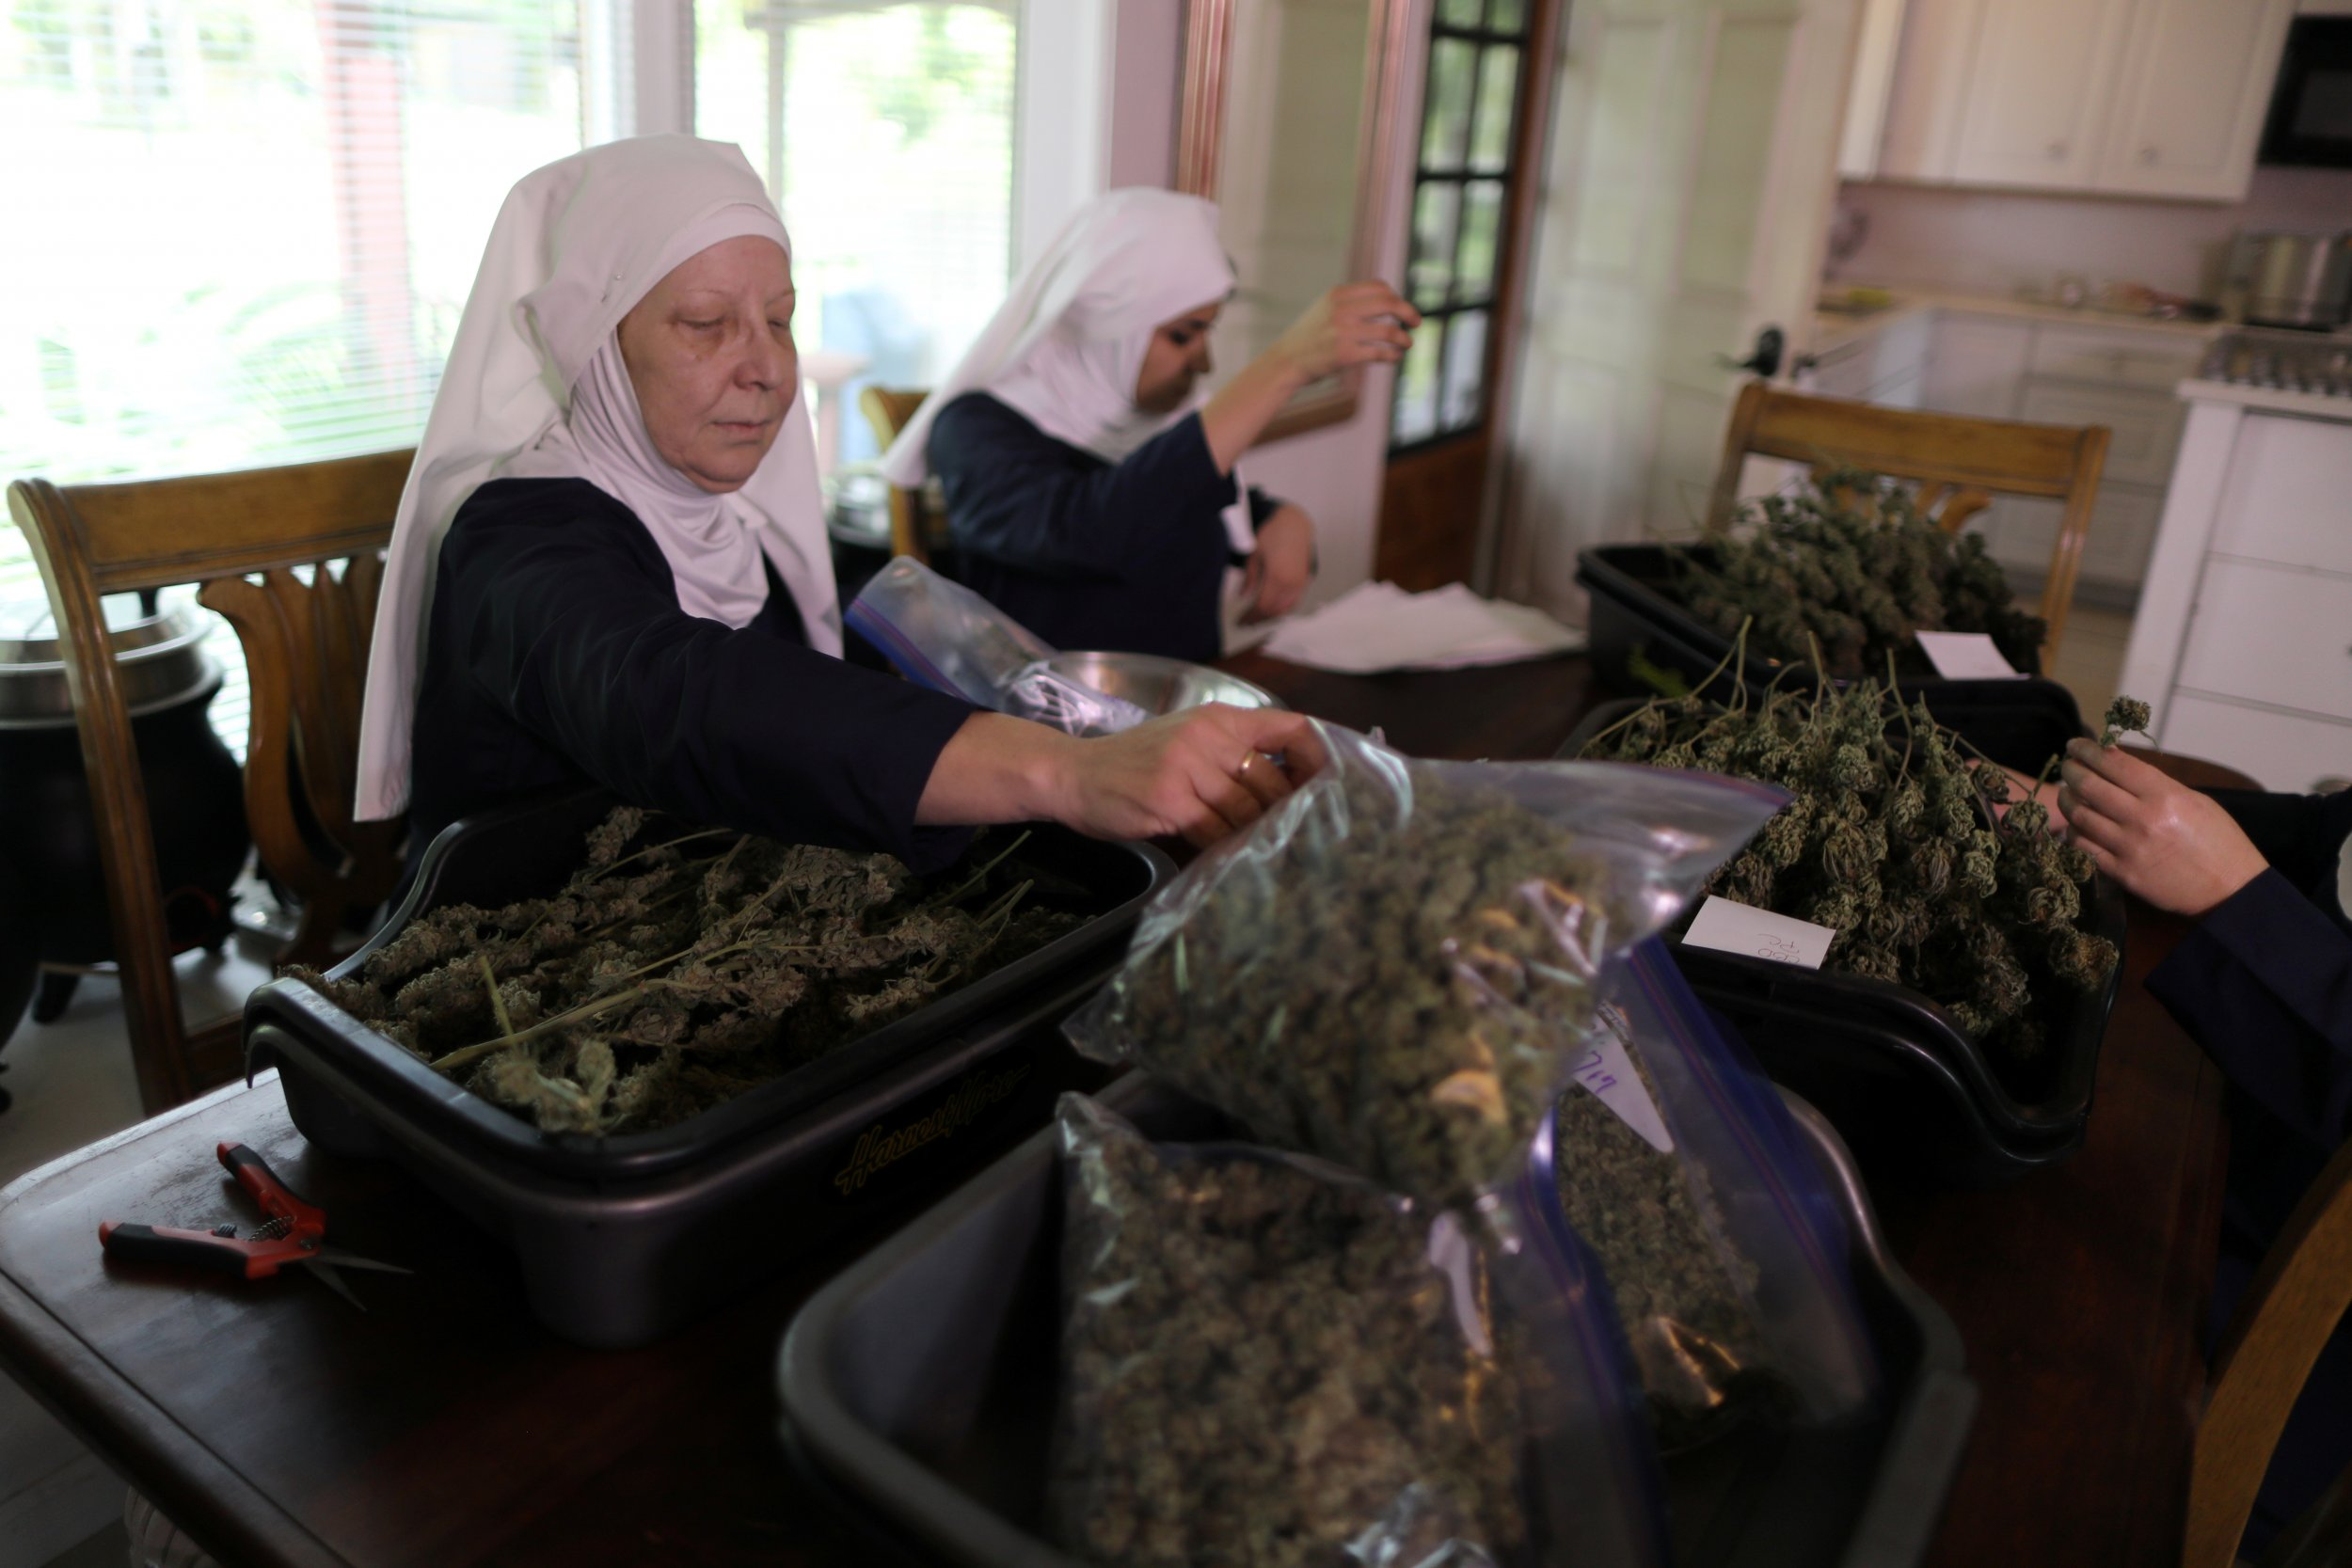 11_21_Church_Nuns_Jesus_Marijuana